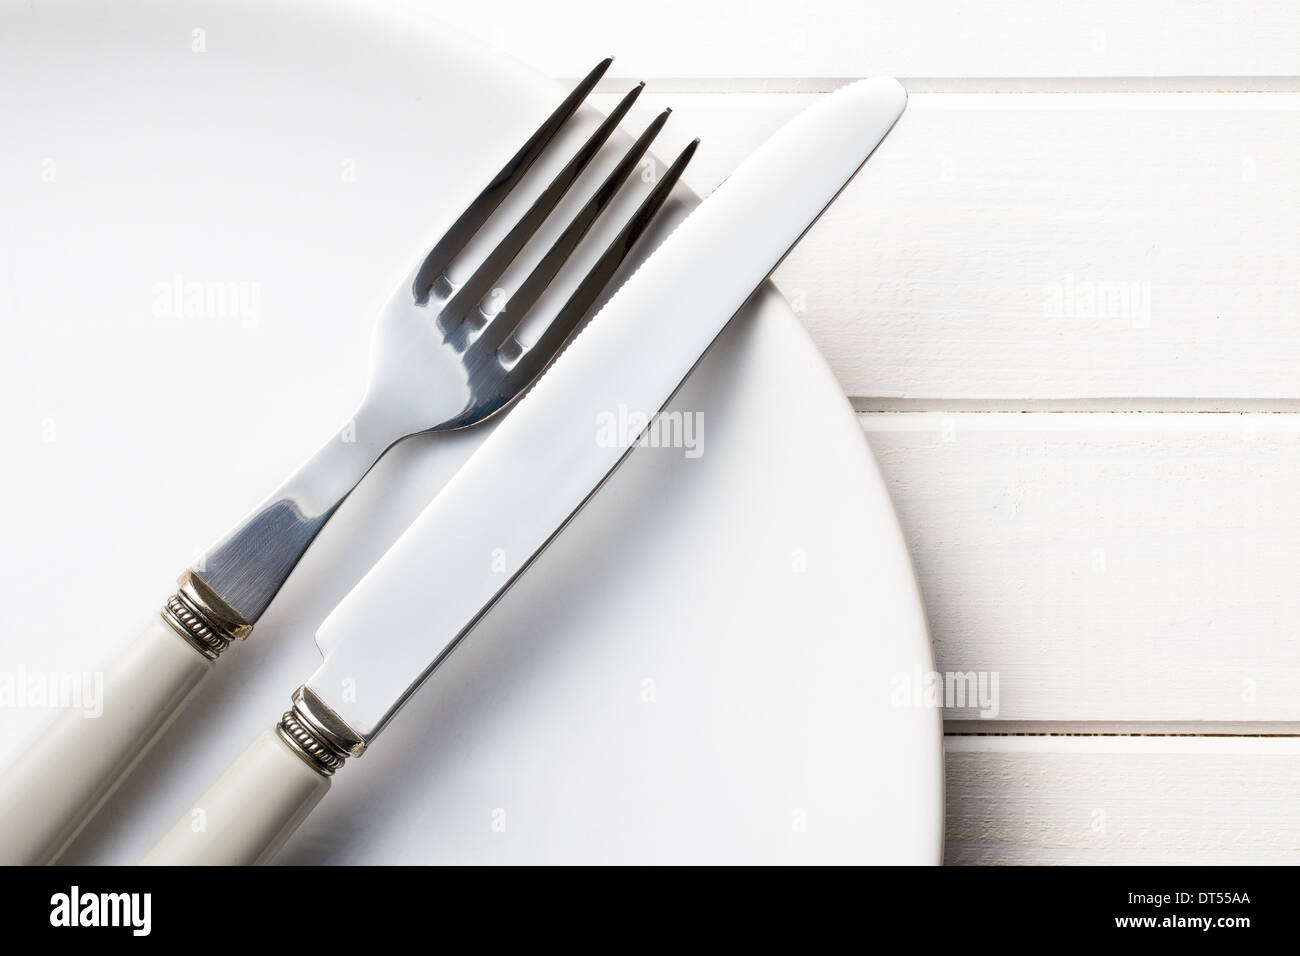 plate with cutlery on kitchen table - Stock Image